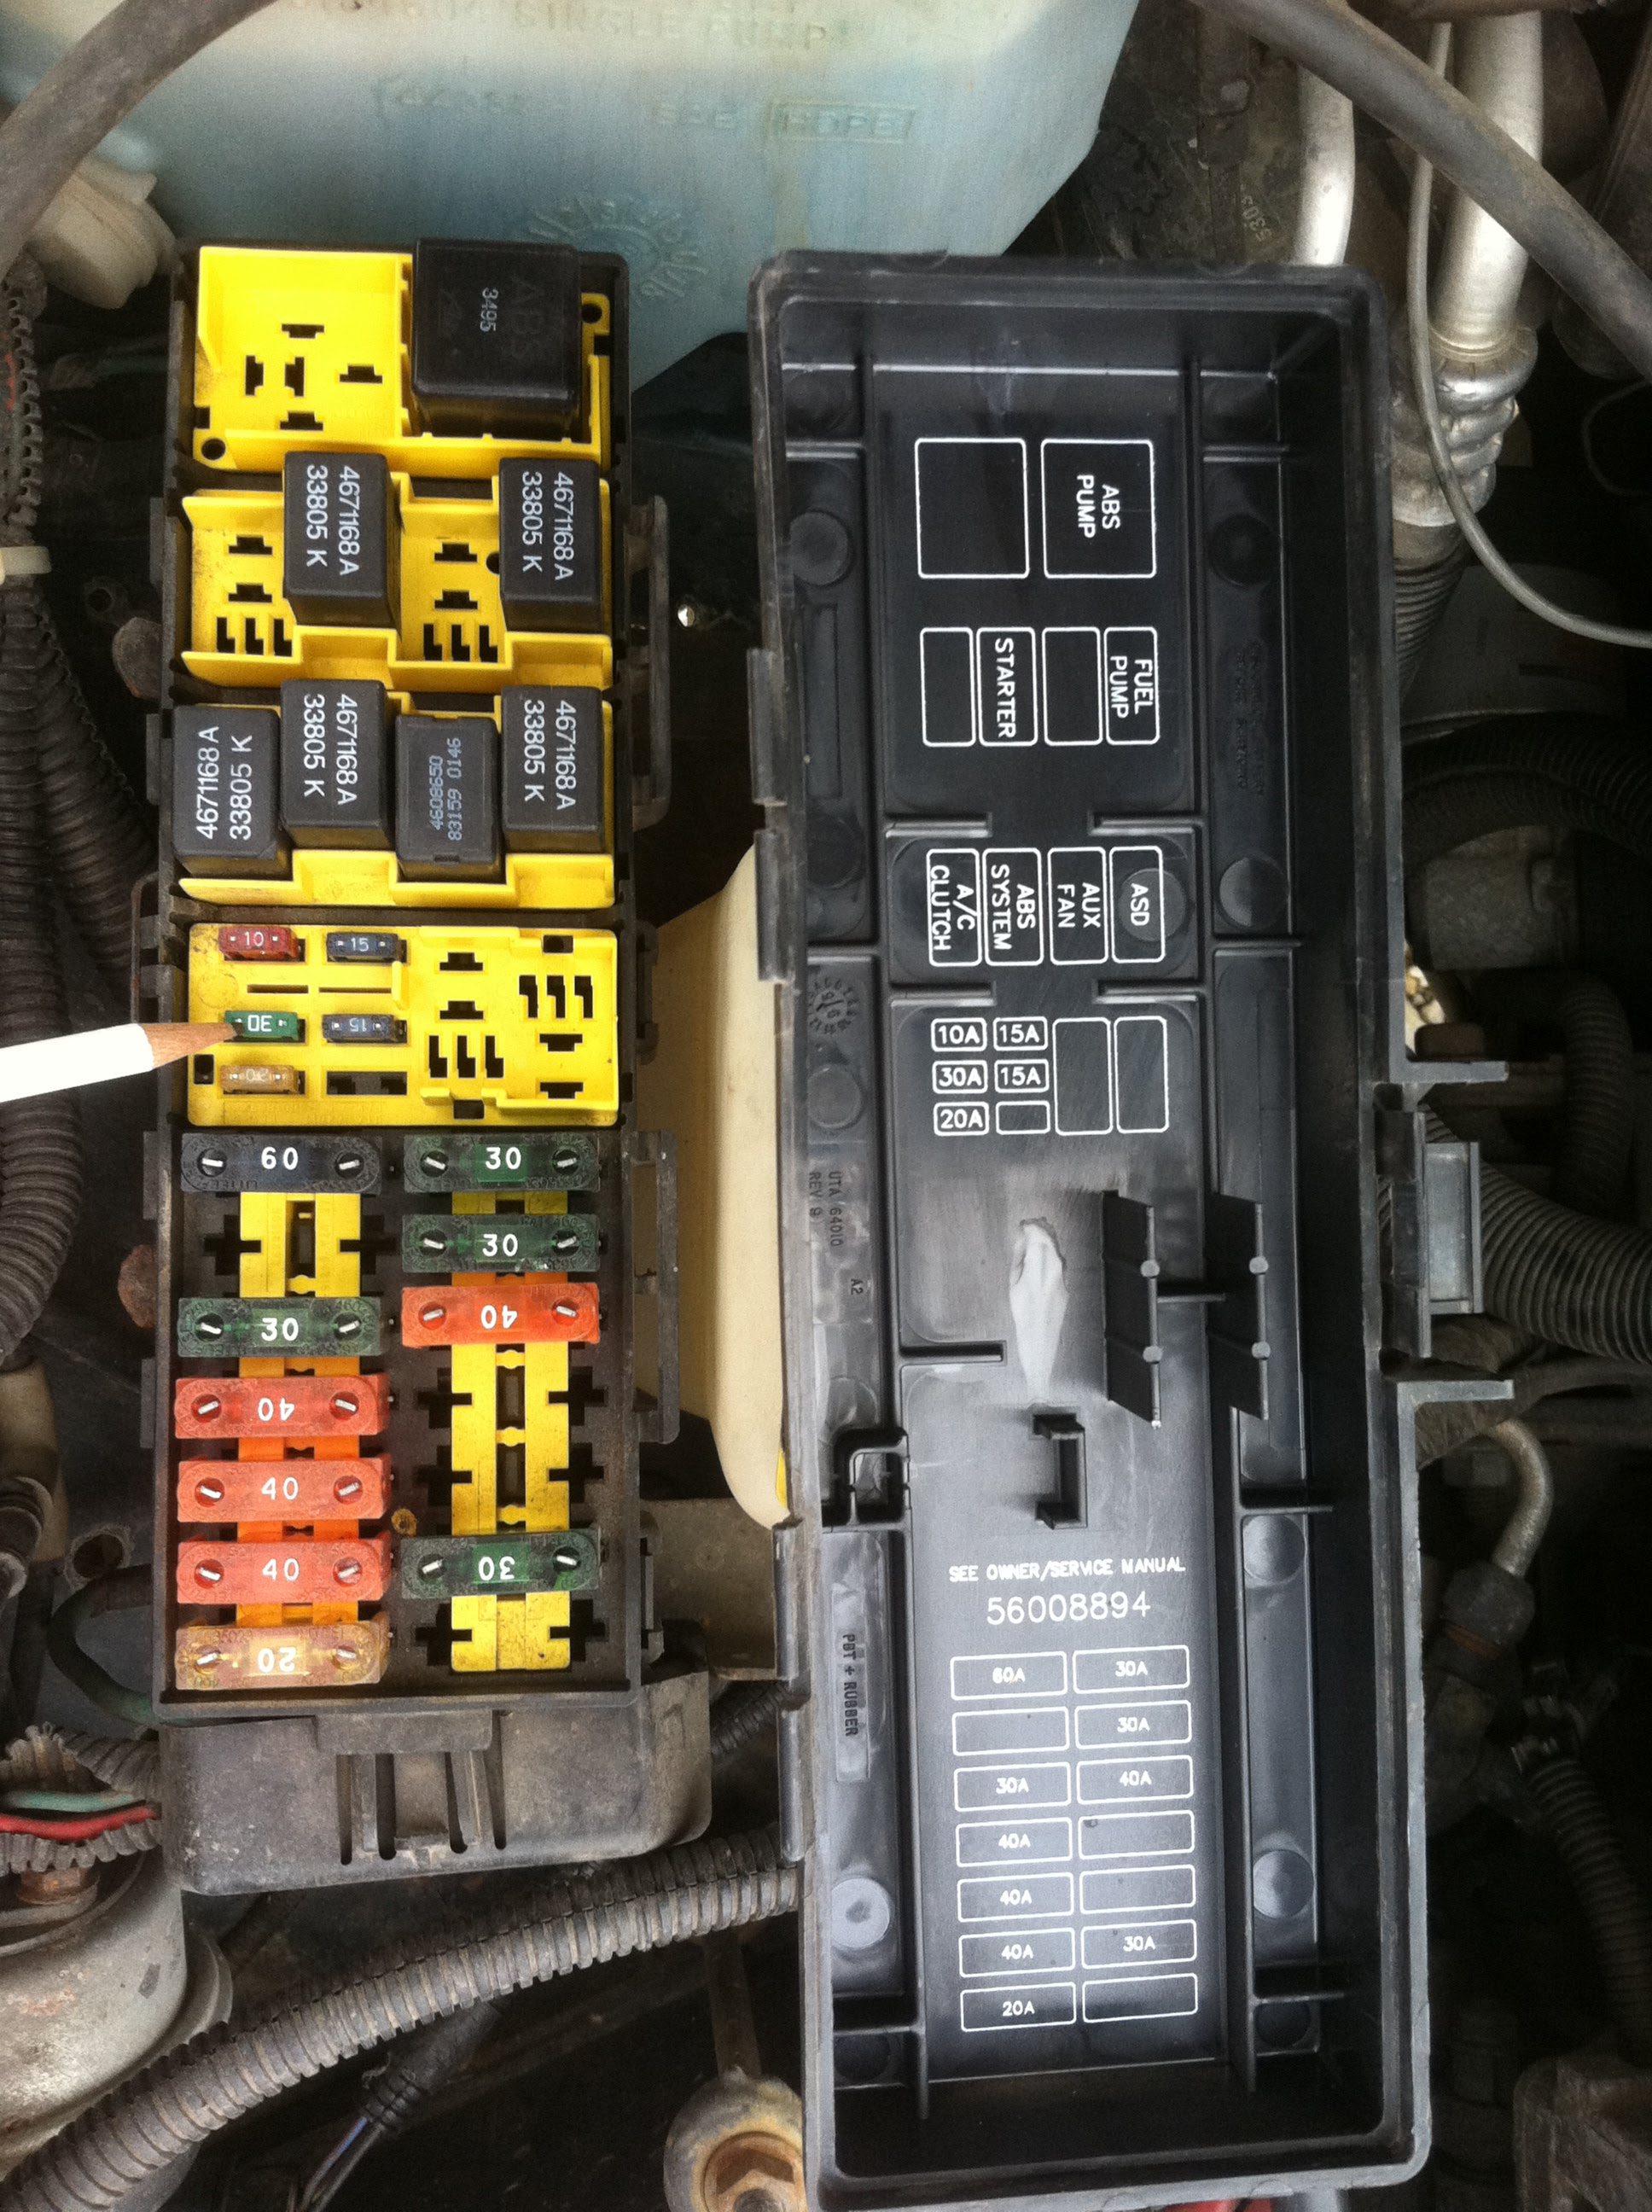 95 Jeep Cherokee Fuse Box Diagram Wiring Diagram Right Limit A Right Limit A Cfcarsnoleggio It